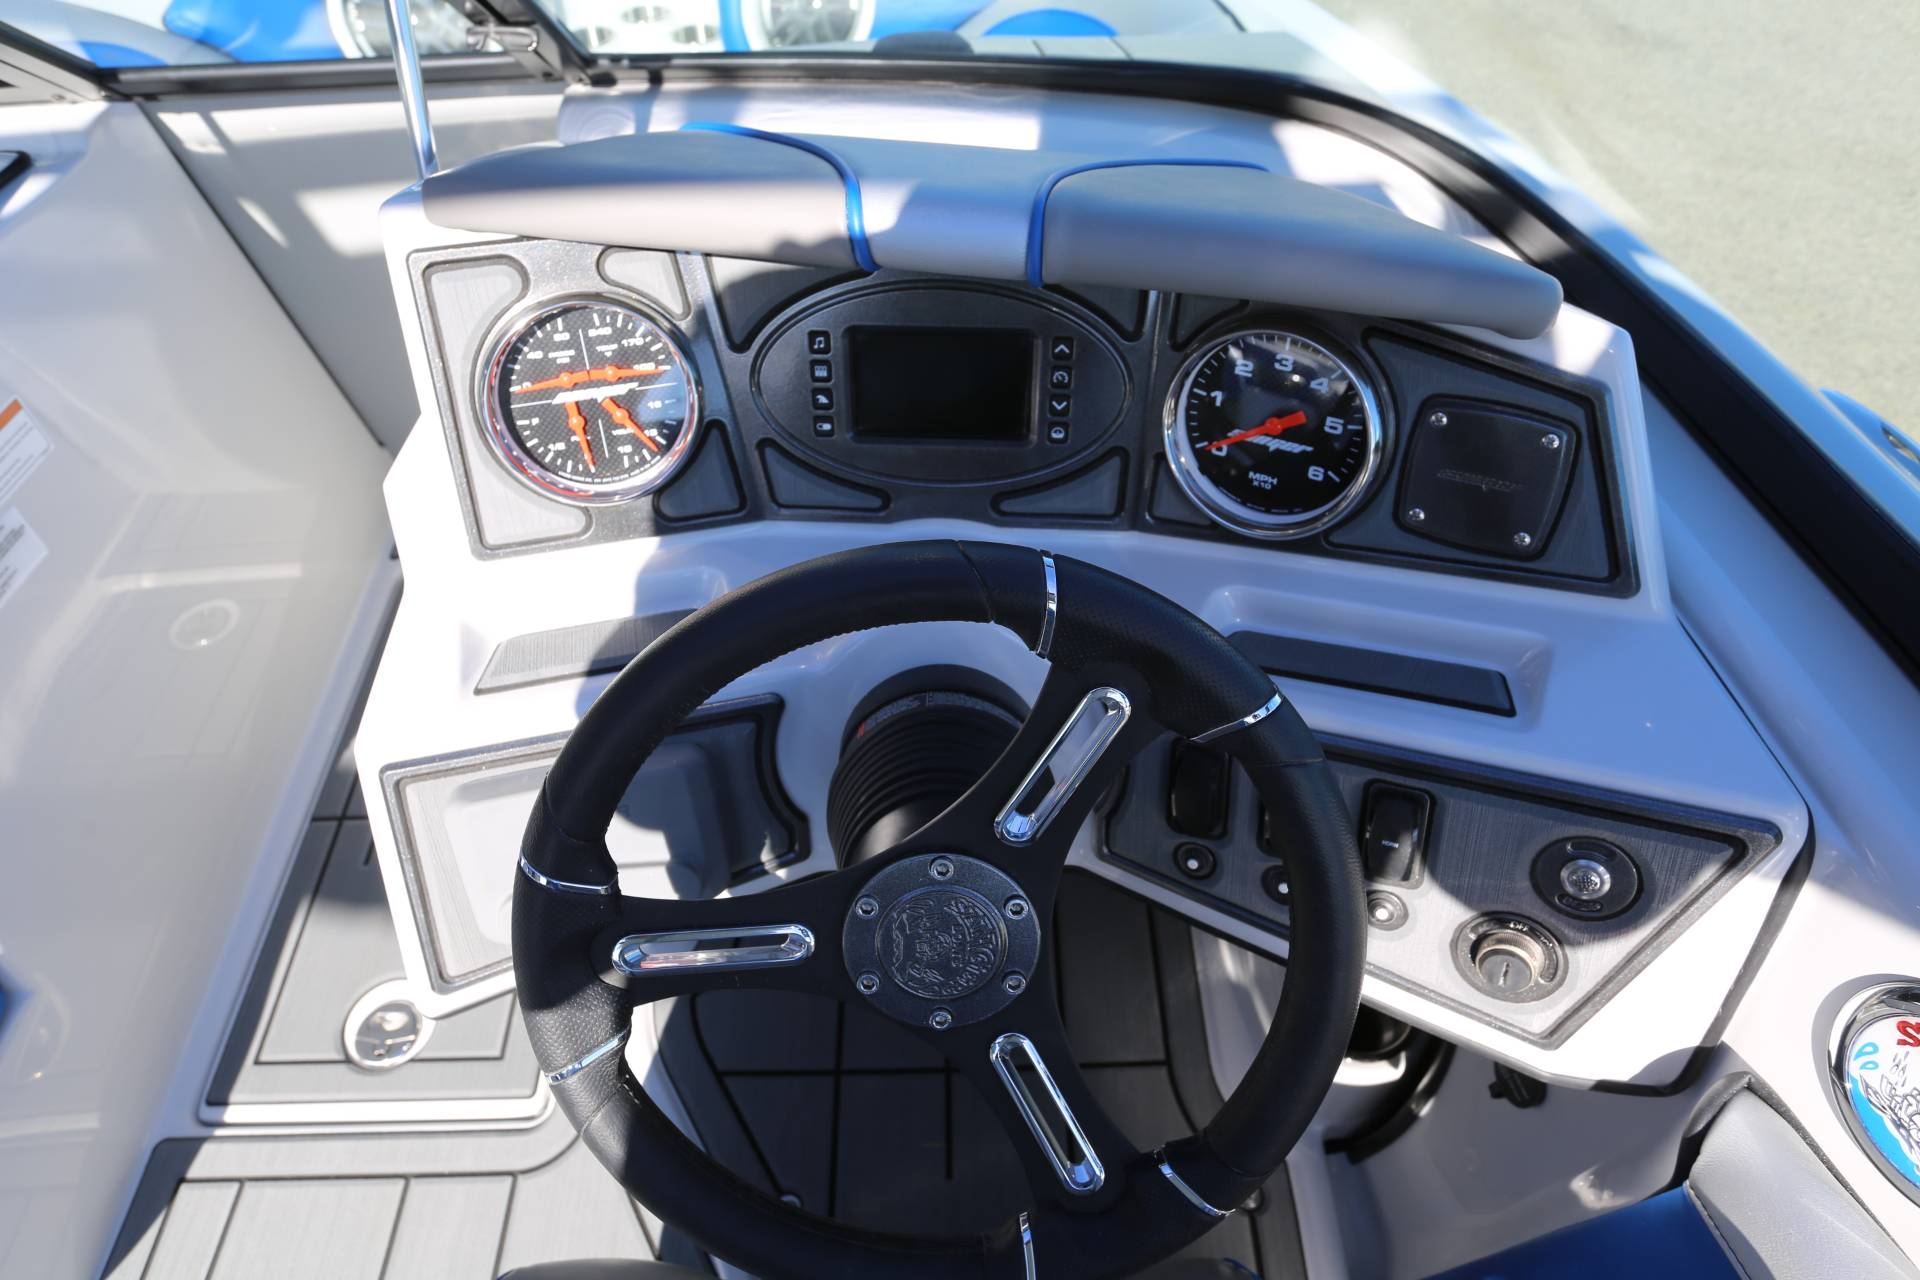 2021 Sanger Boats 212 SL in Madera, California - Photo 13